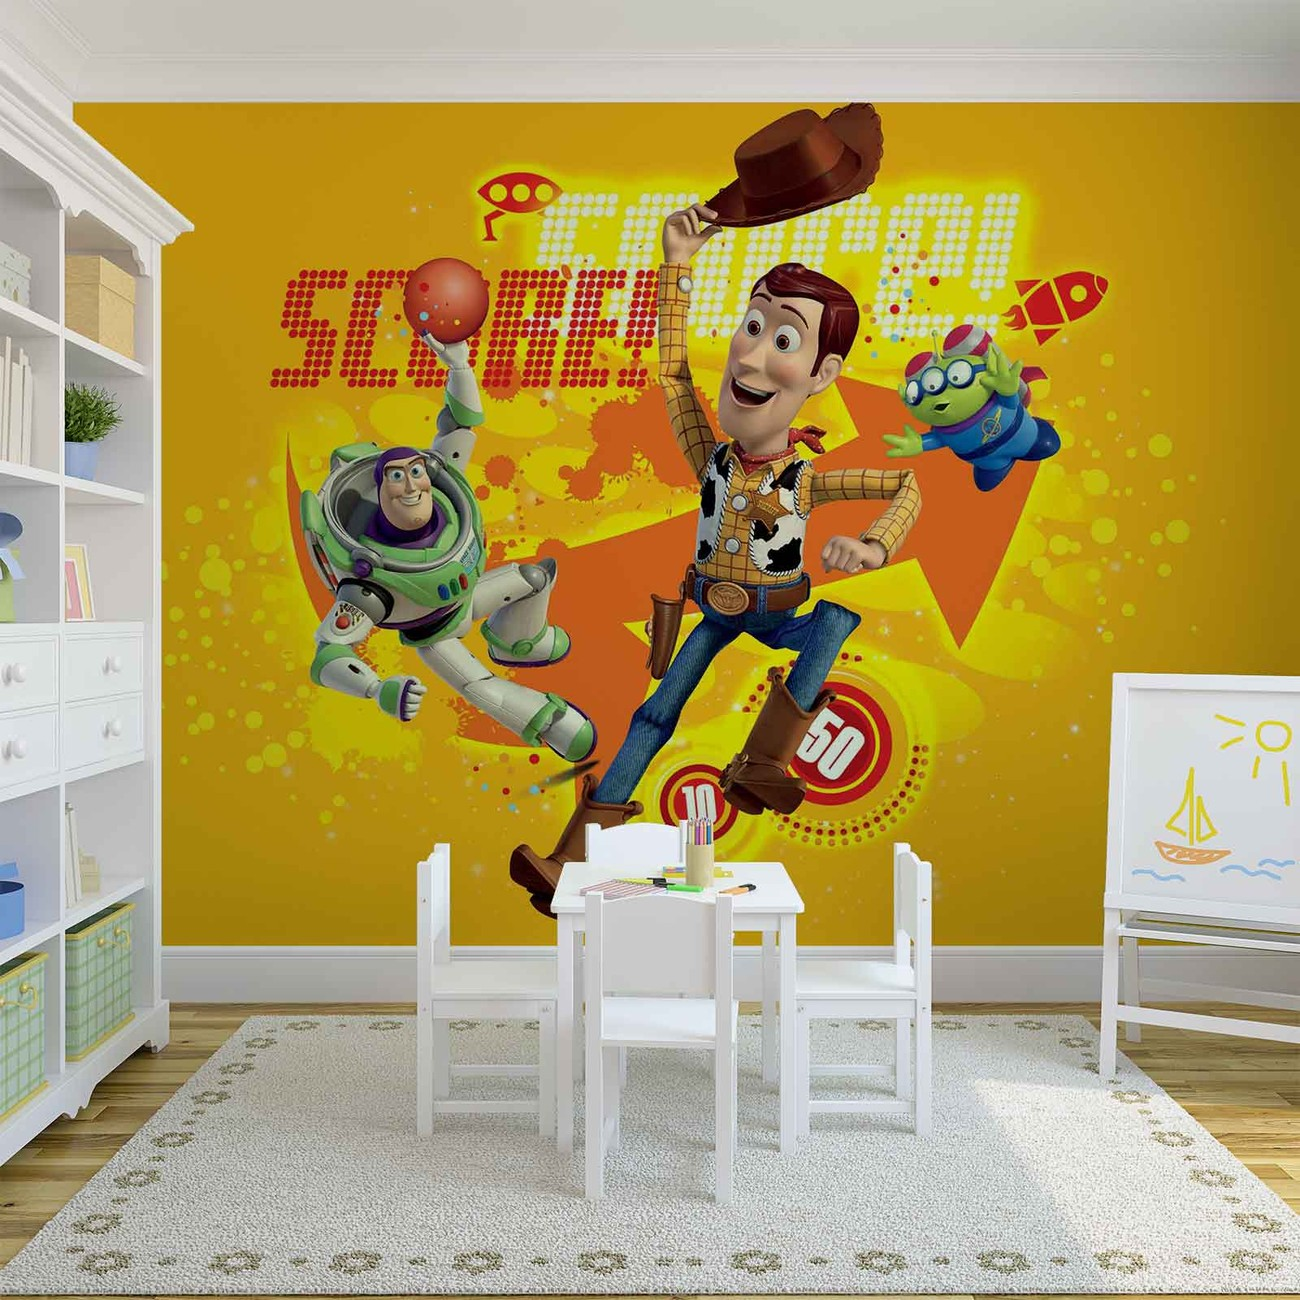 Magnificent Toy Story Wall Decor Component - The Wall Art ...